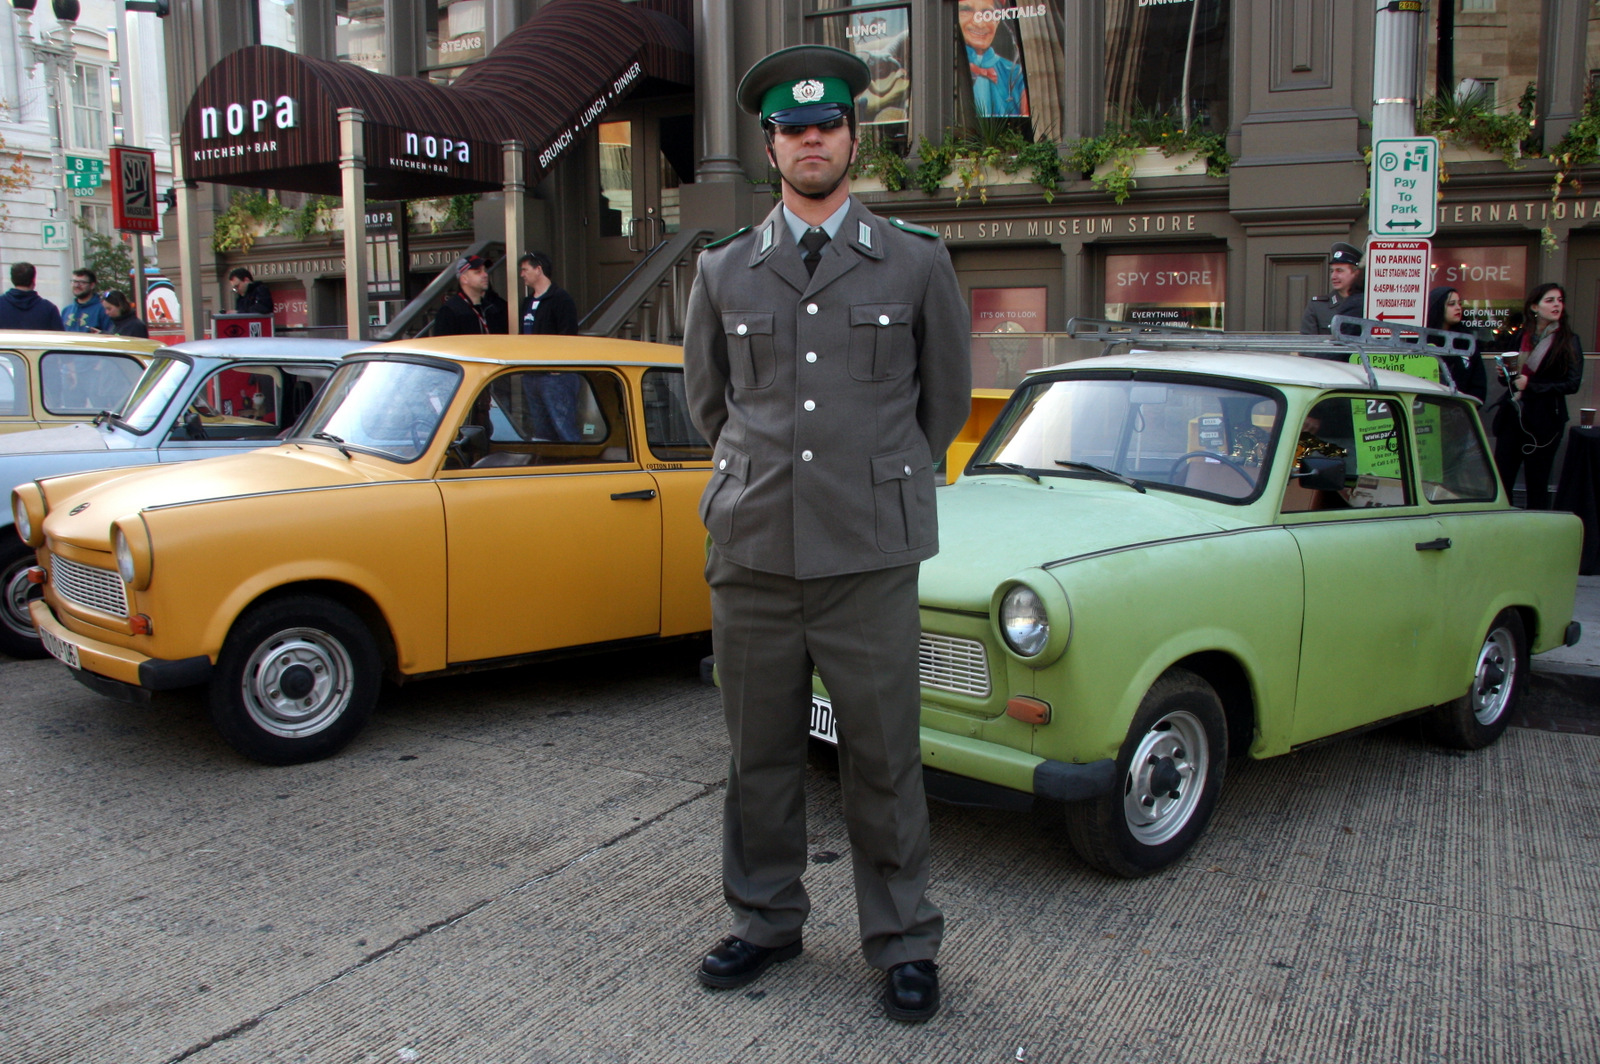 Due to mechanical problems, David Gallagher's Trabant didn't make it, but he turned up at the Parade of Trabants in an East German uniform.